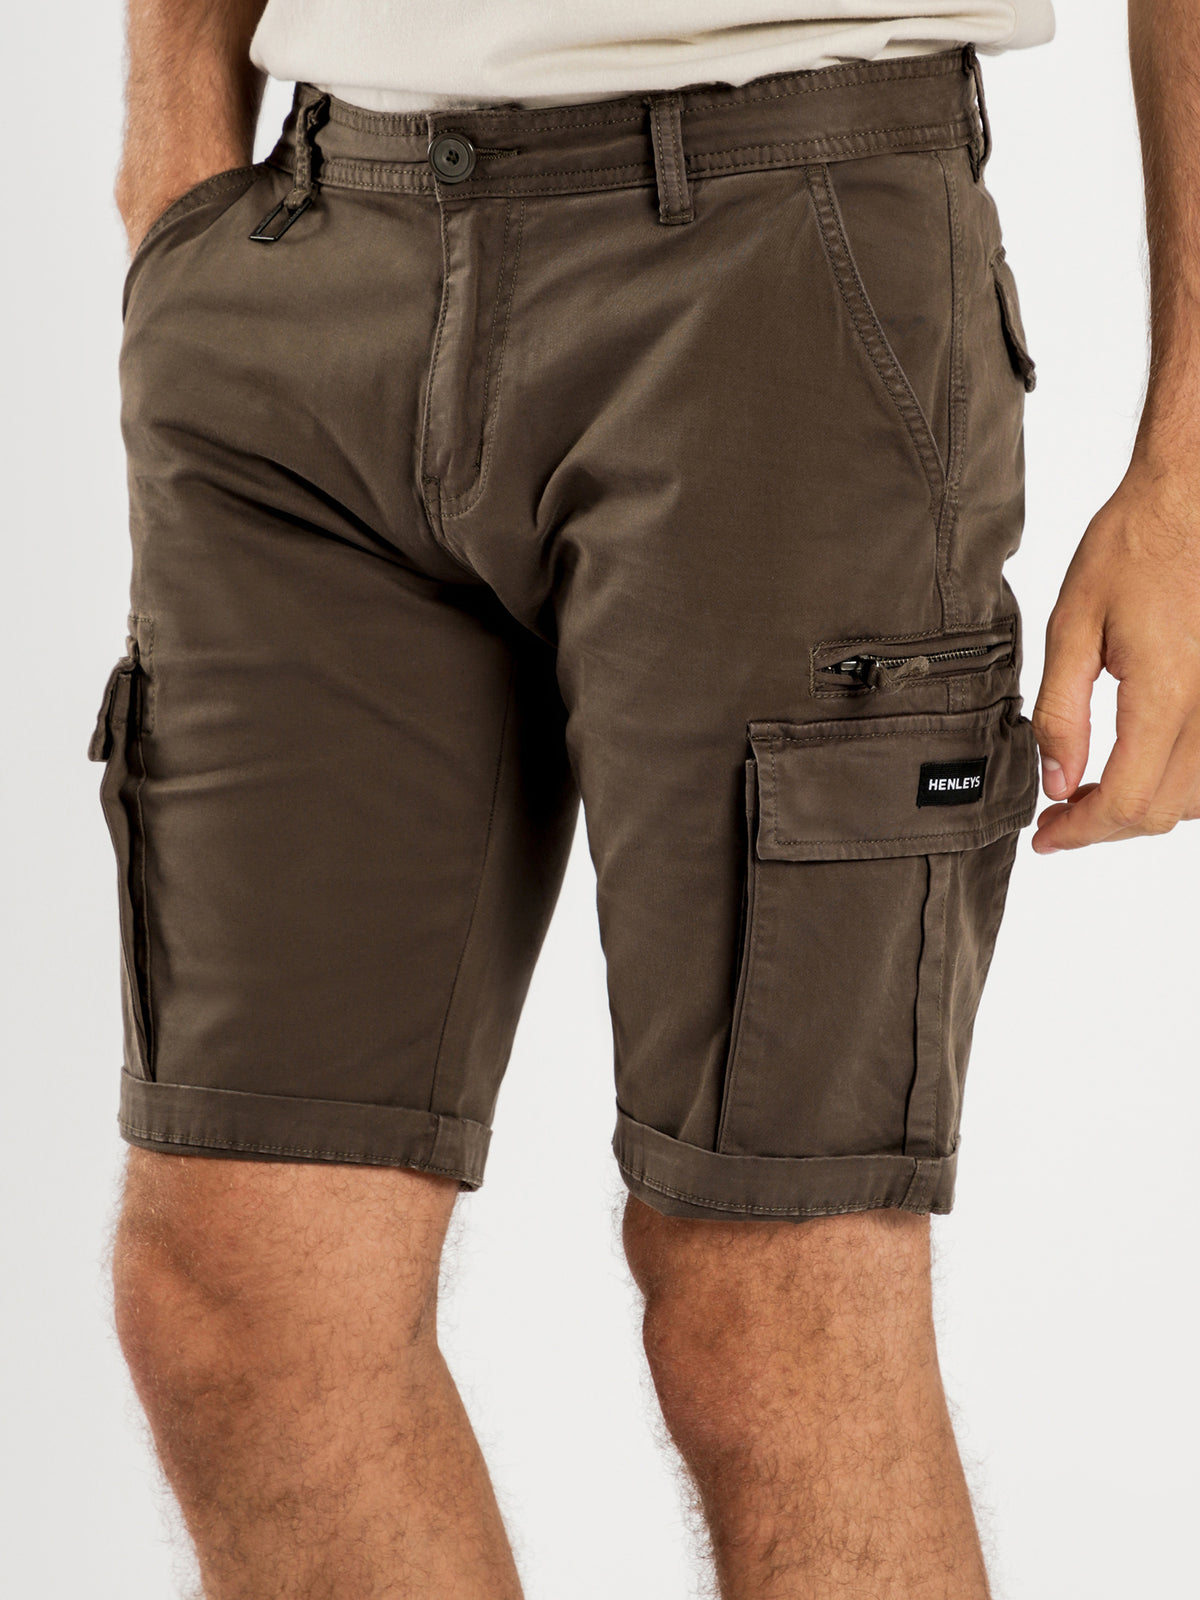 Otis Shorts in Army